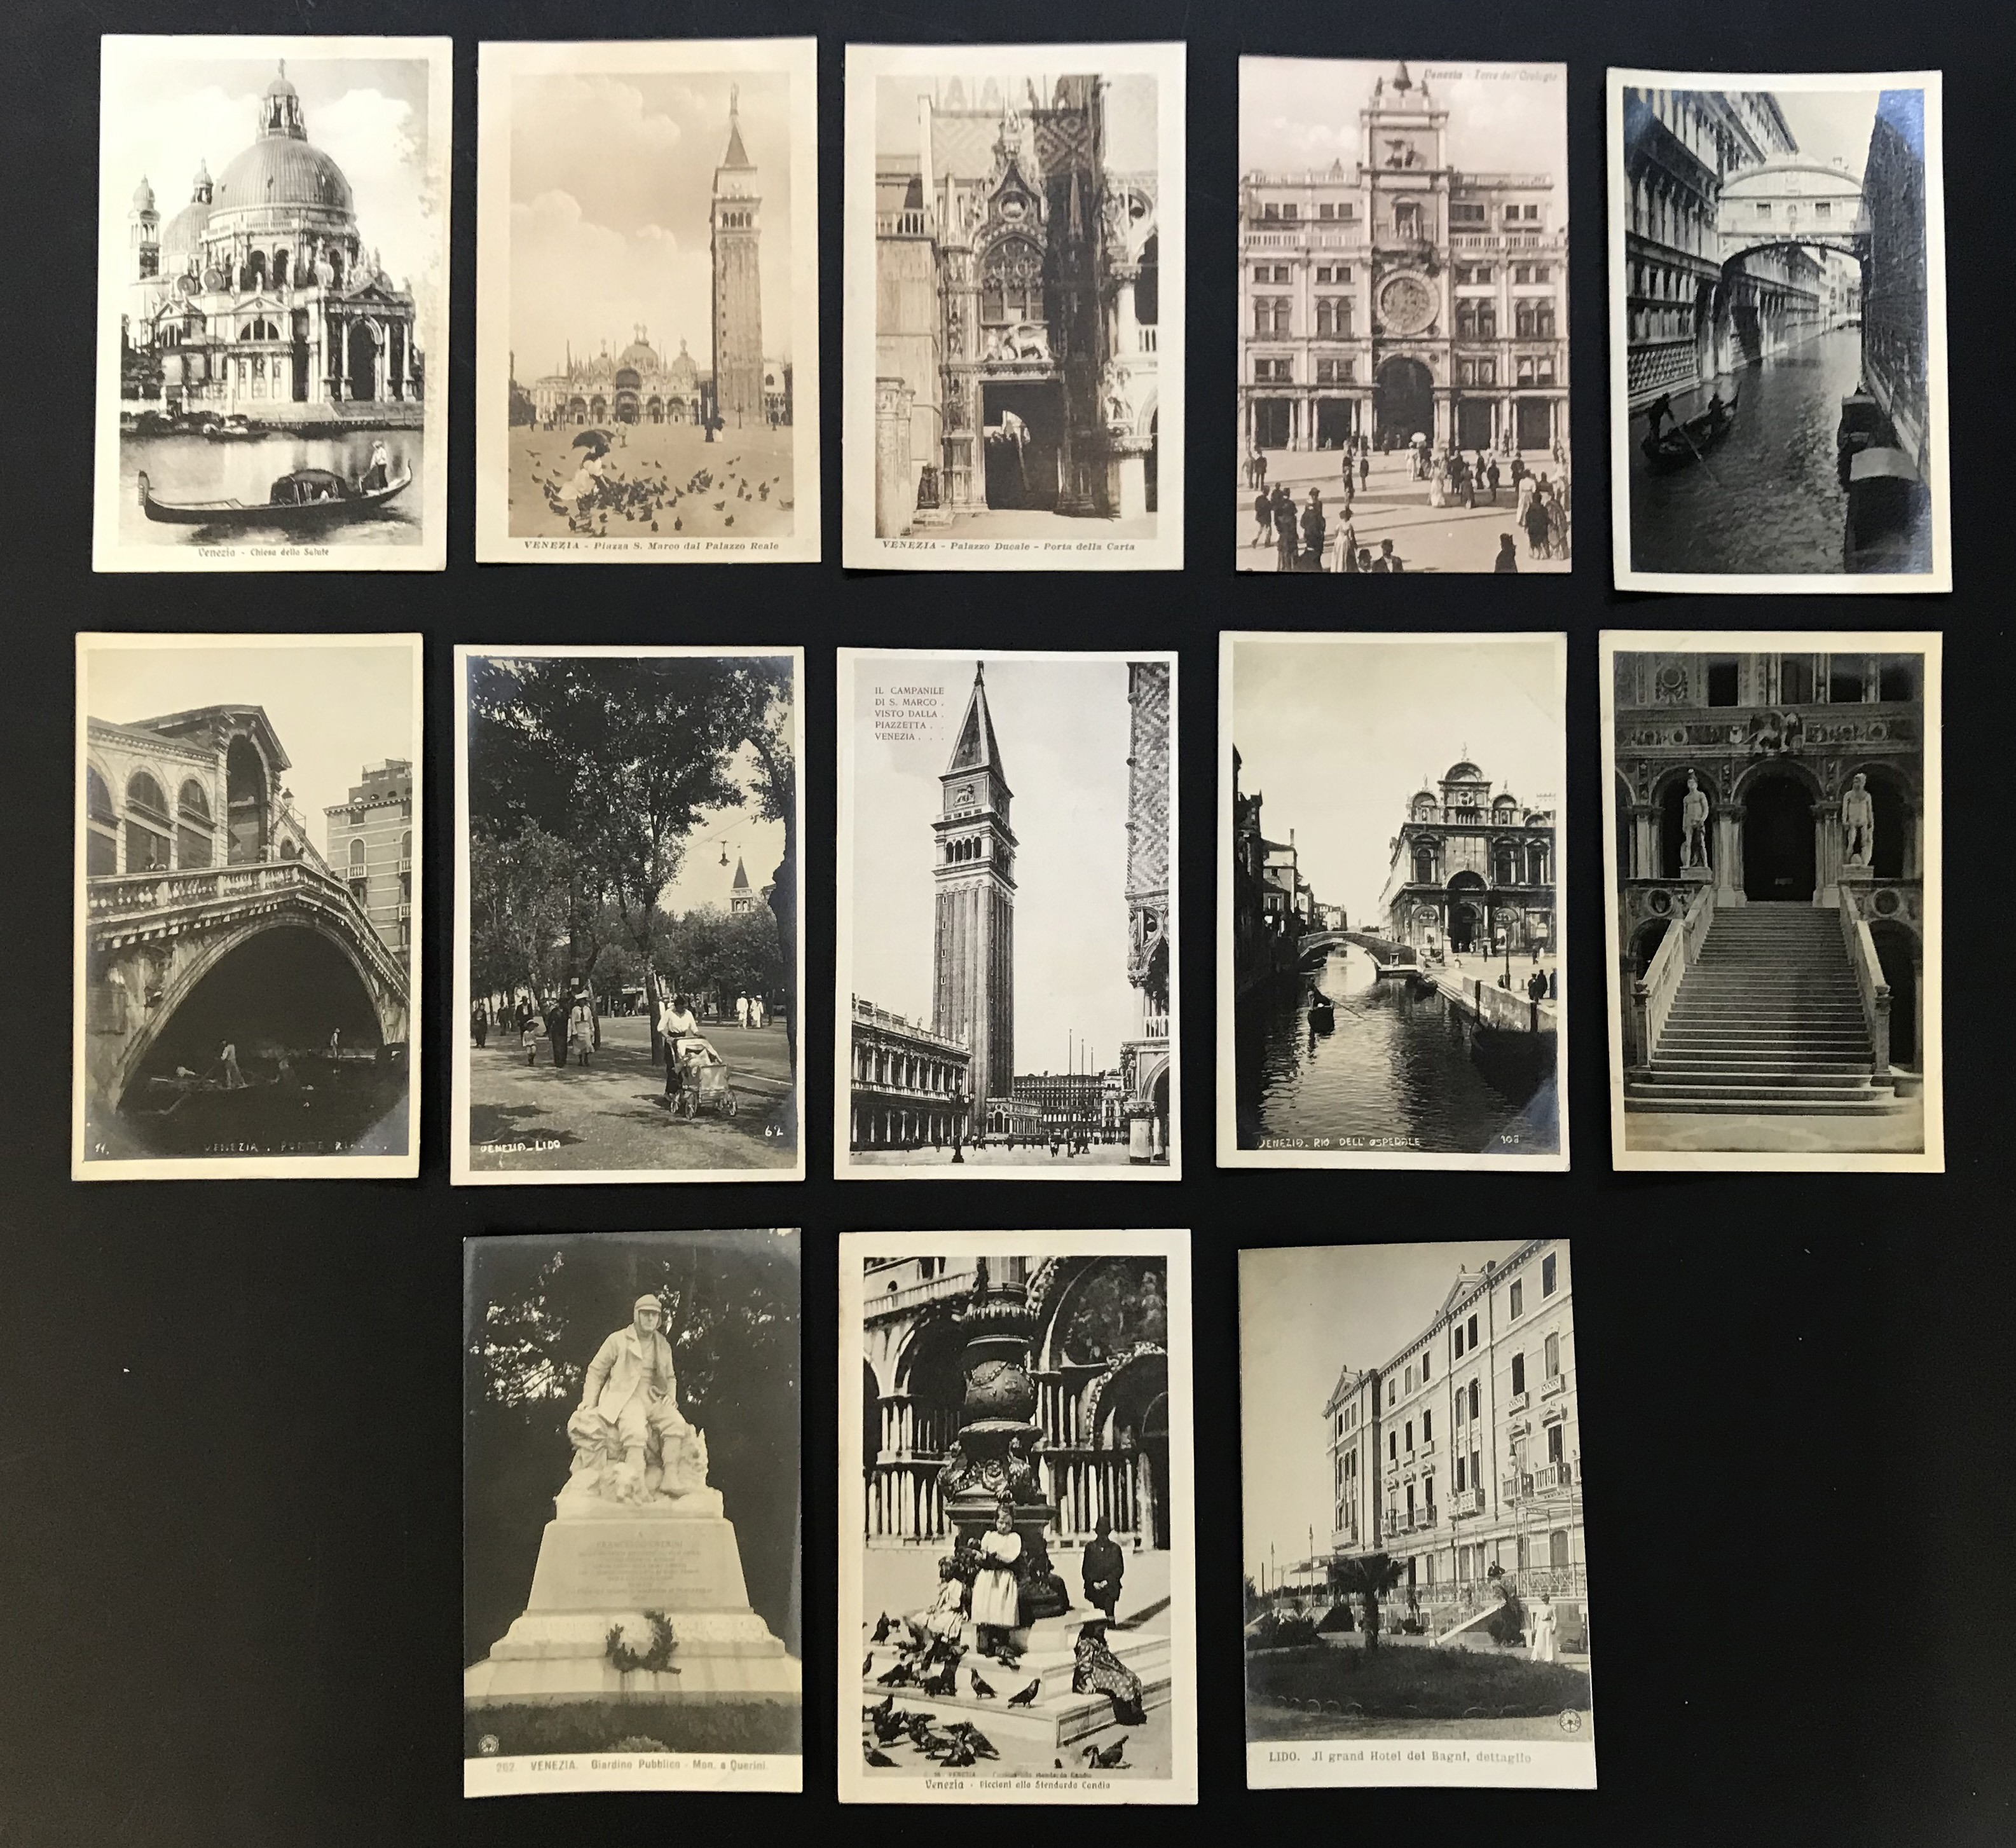 SELECTION OF VENICE RELATED POSTCARDS - Image 16 of 53